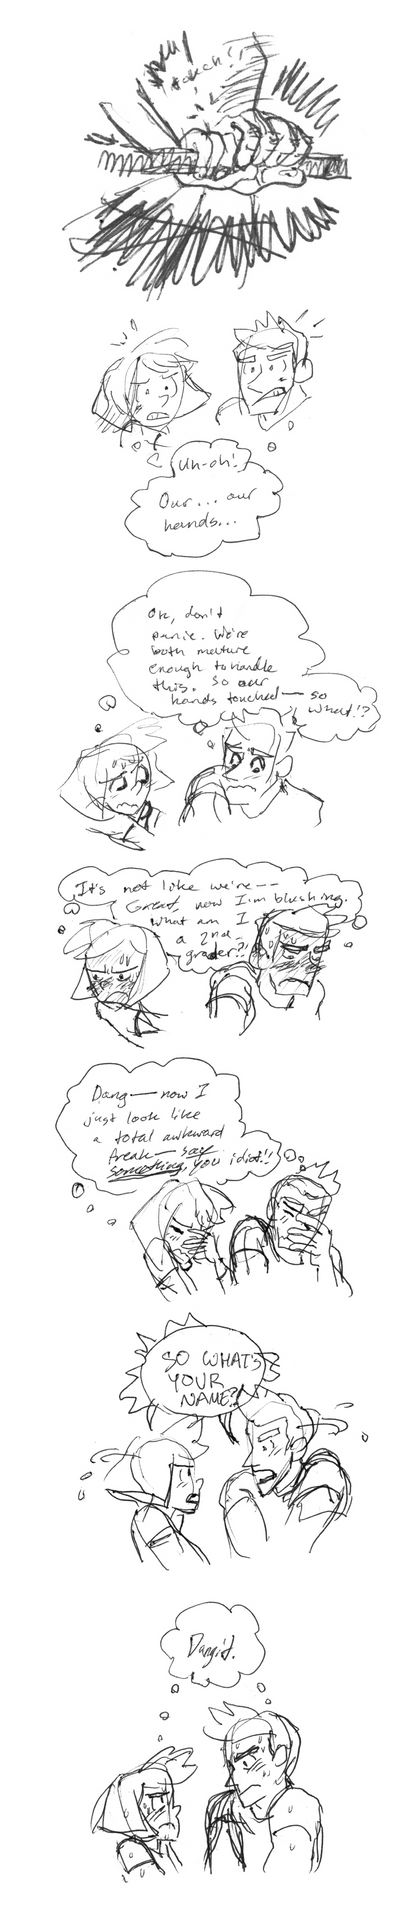 Sketch Comic - Hands touching by animatrix1490